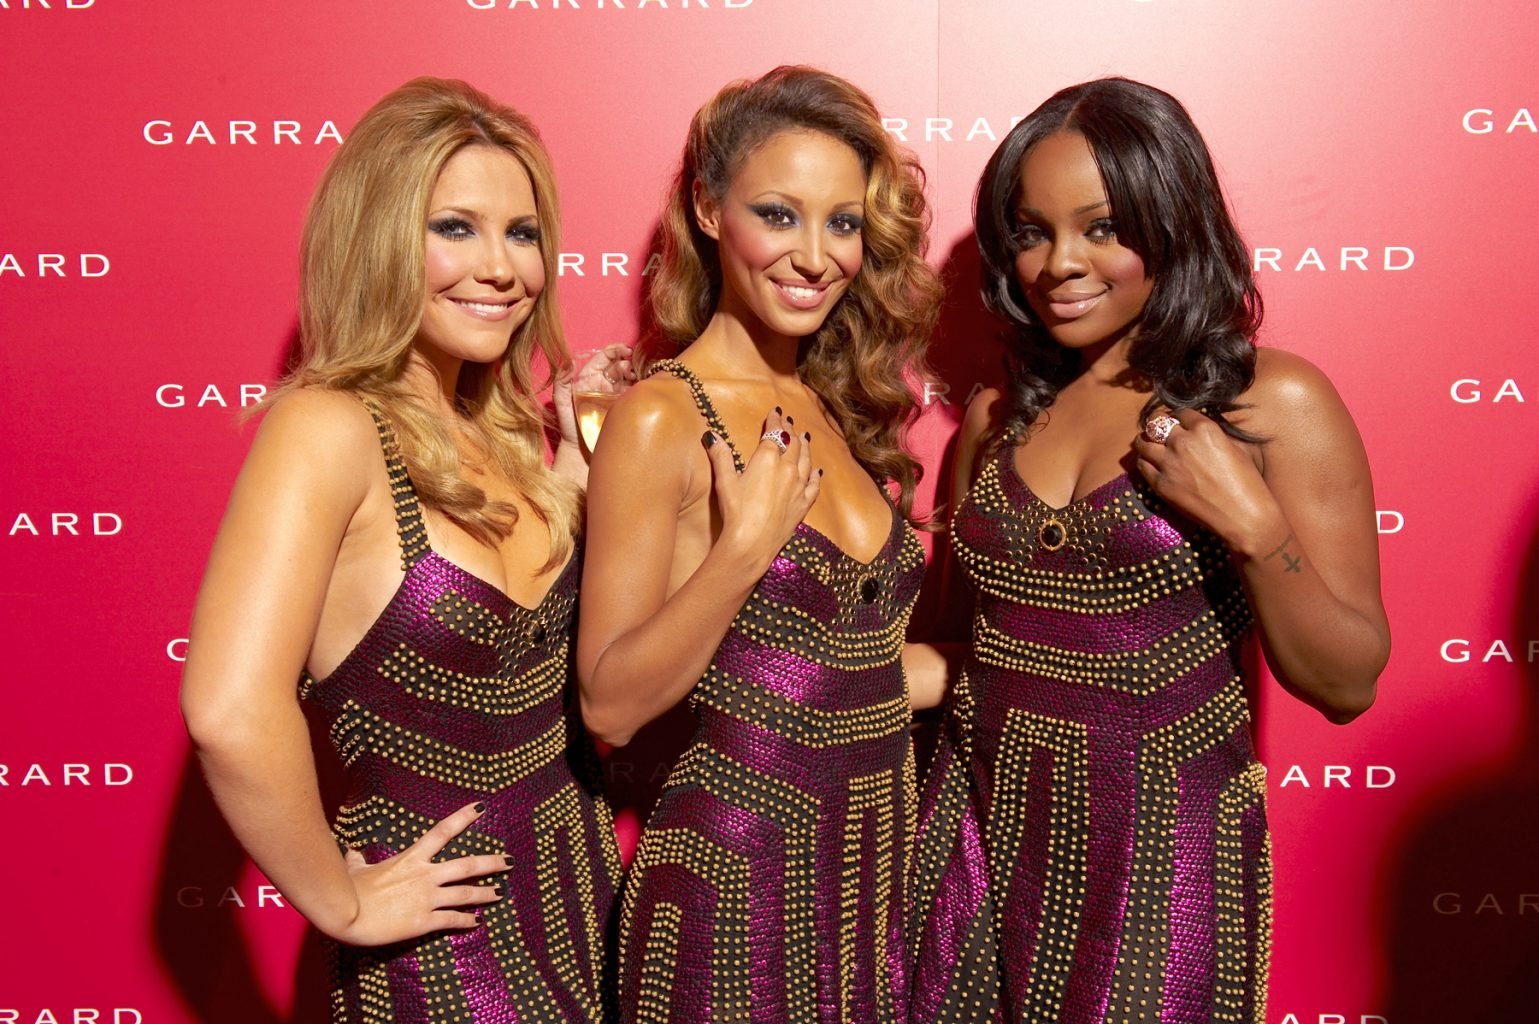 Sugar Babes attend a charity fashion night sponsored by Garrad Jewelers